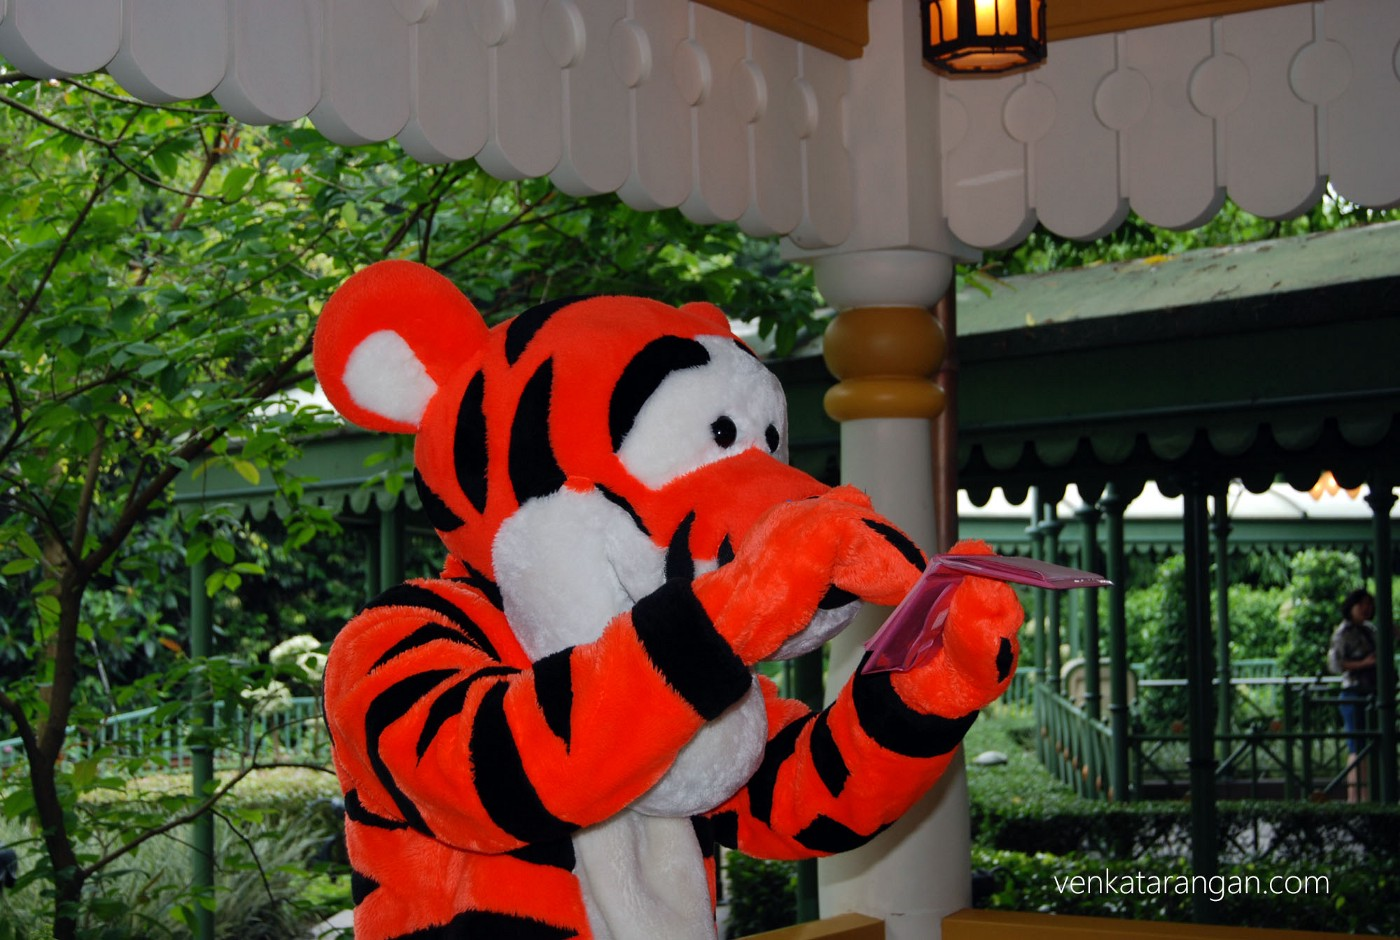 Tigger, the tiger signing his autograph